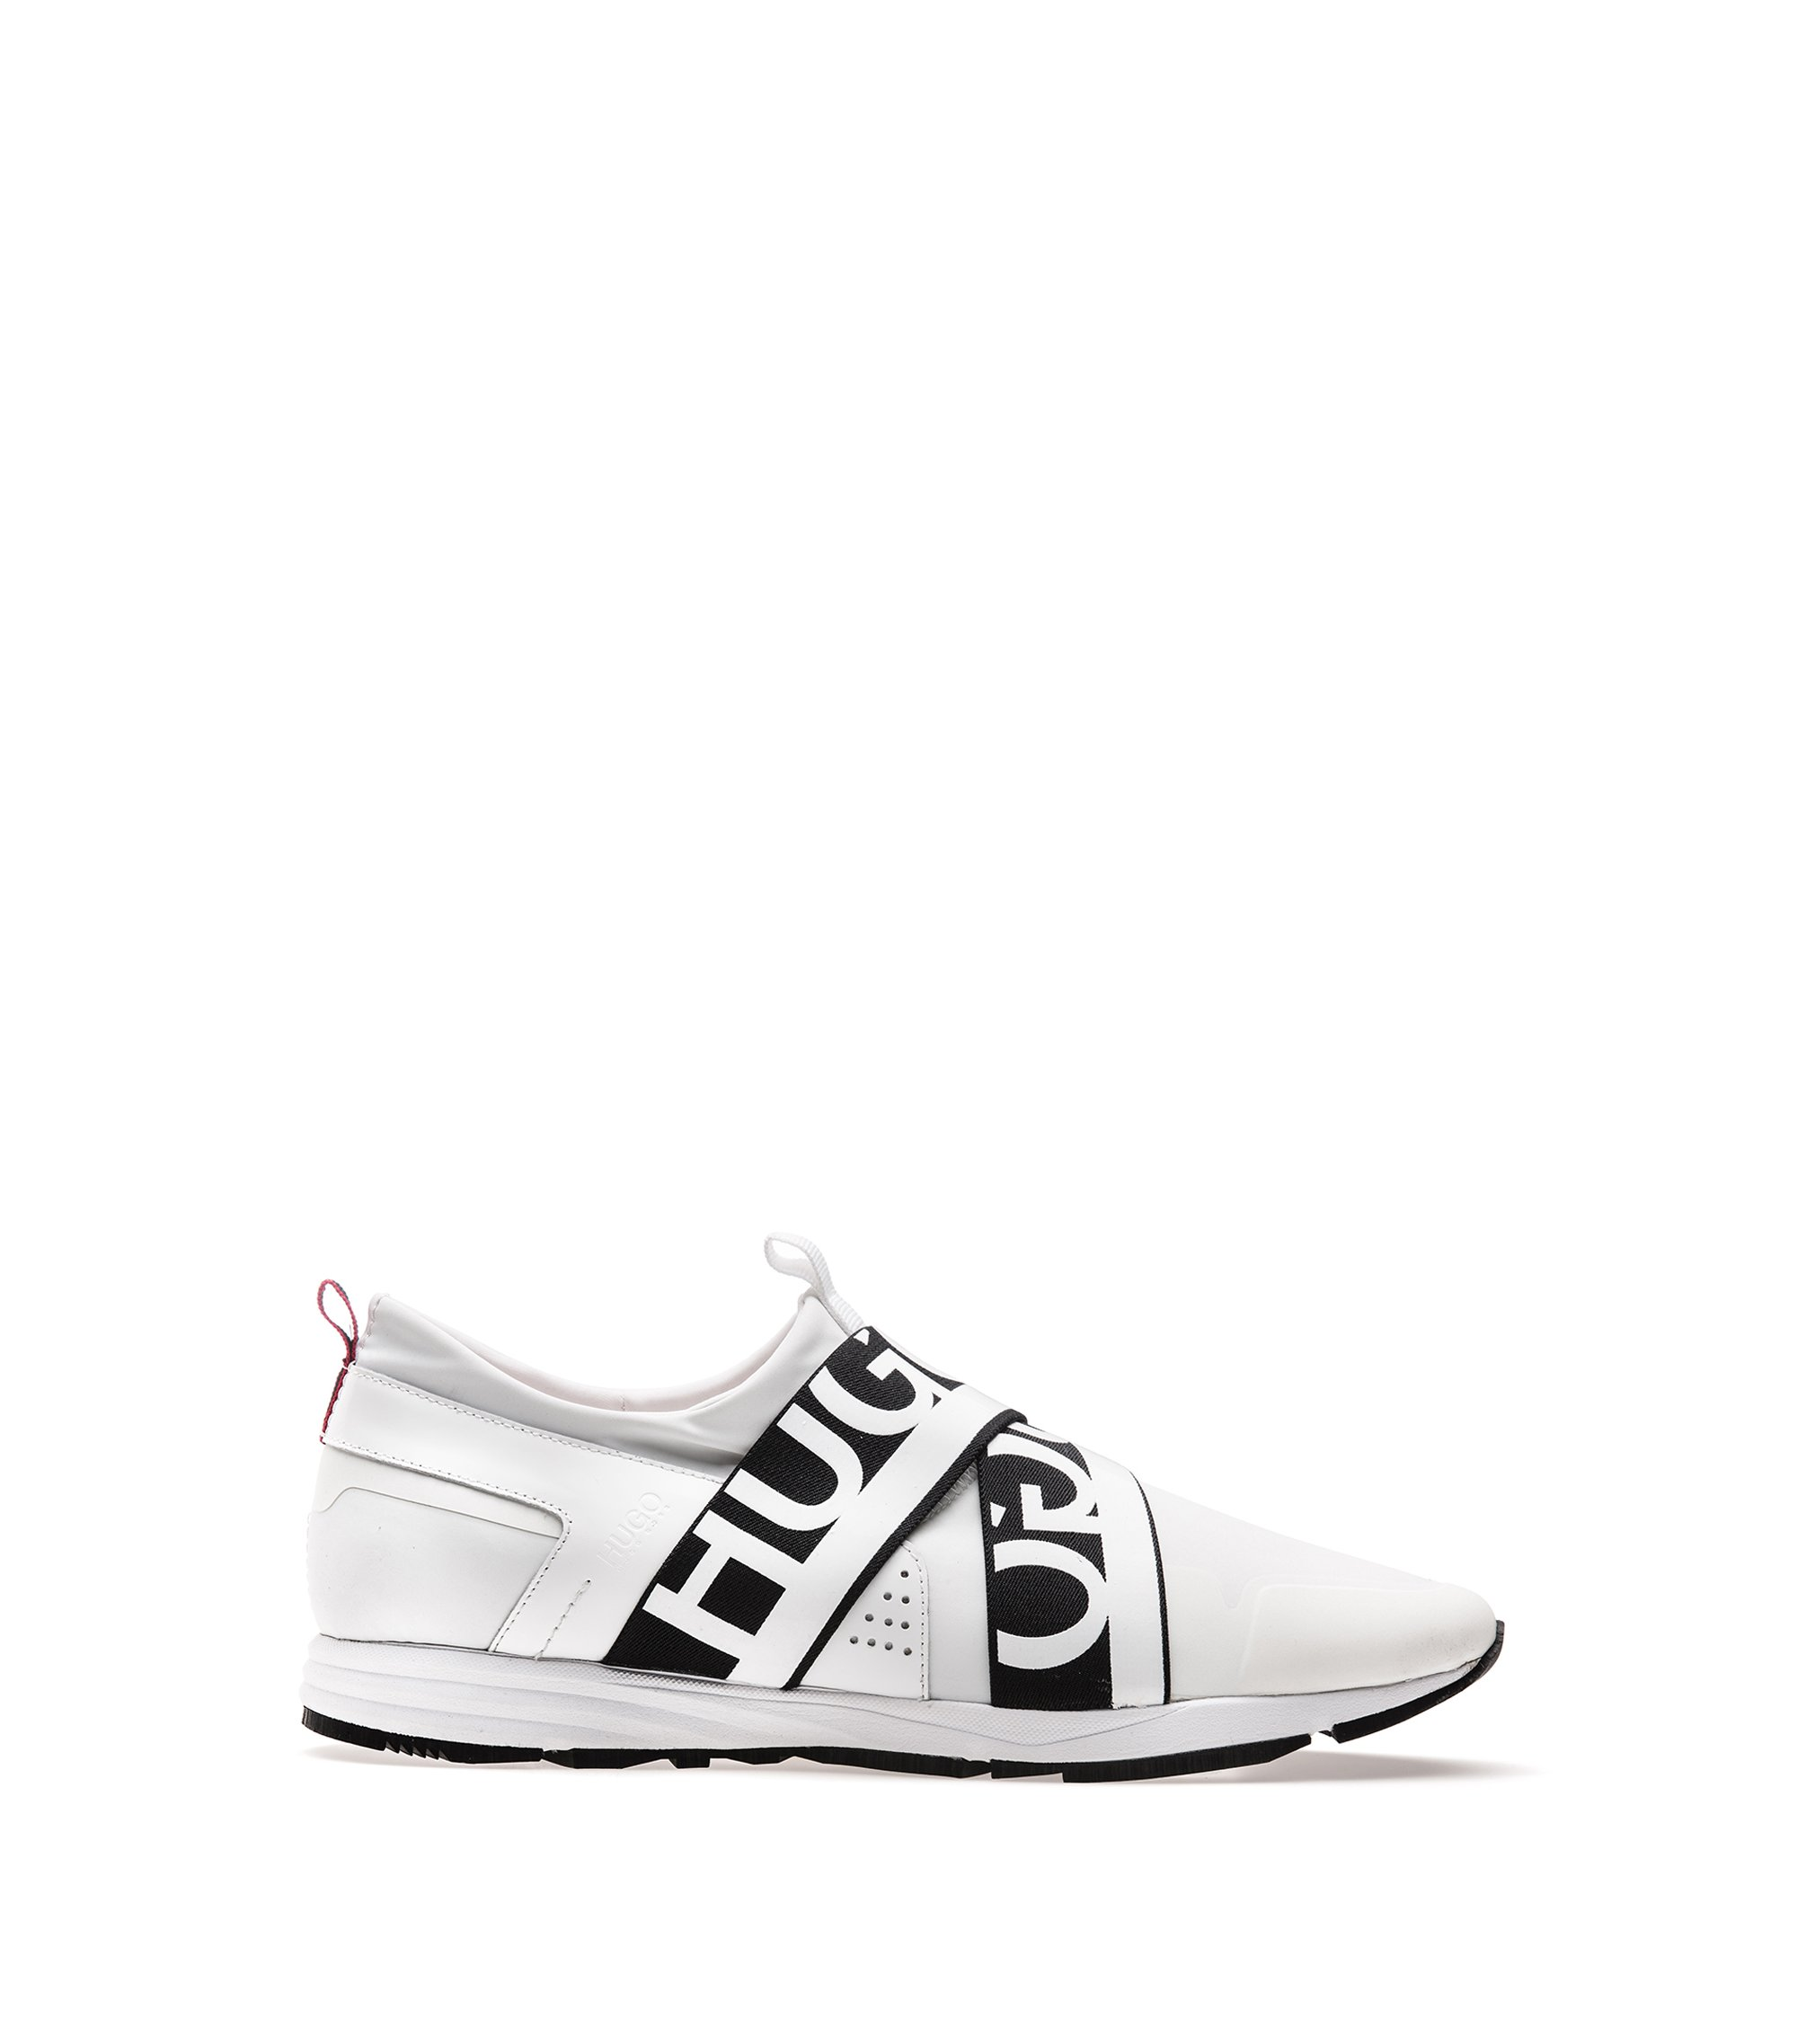 Vegan Leather Sneaker | Hybrid Runn, White